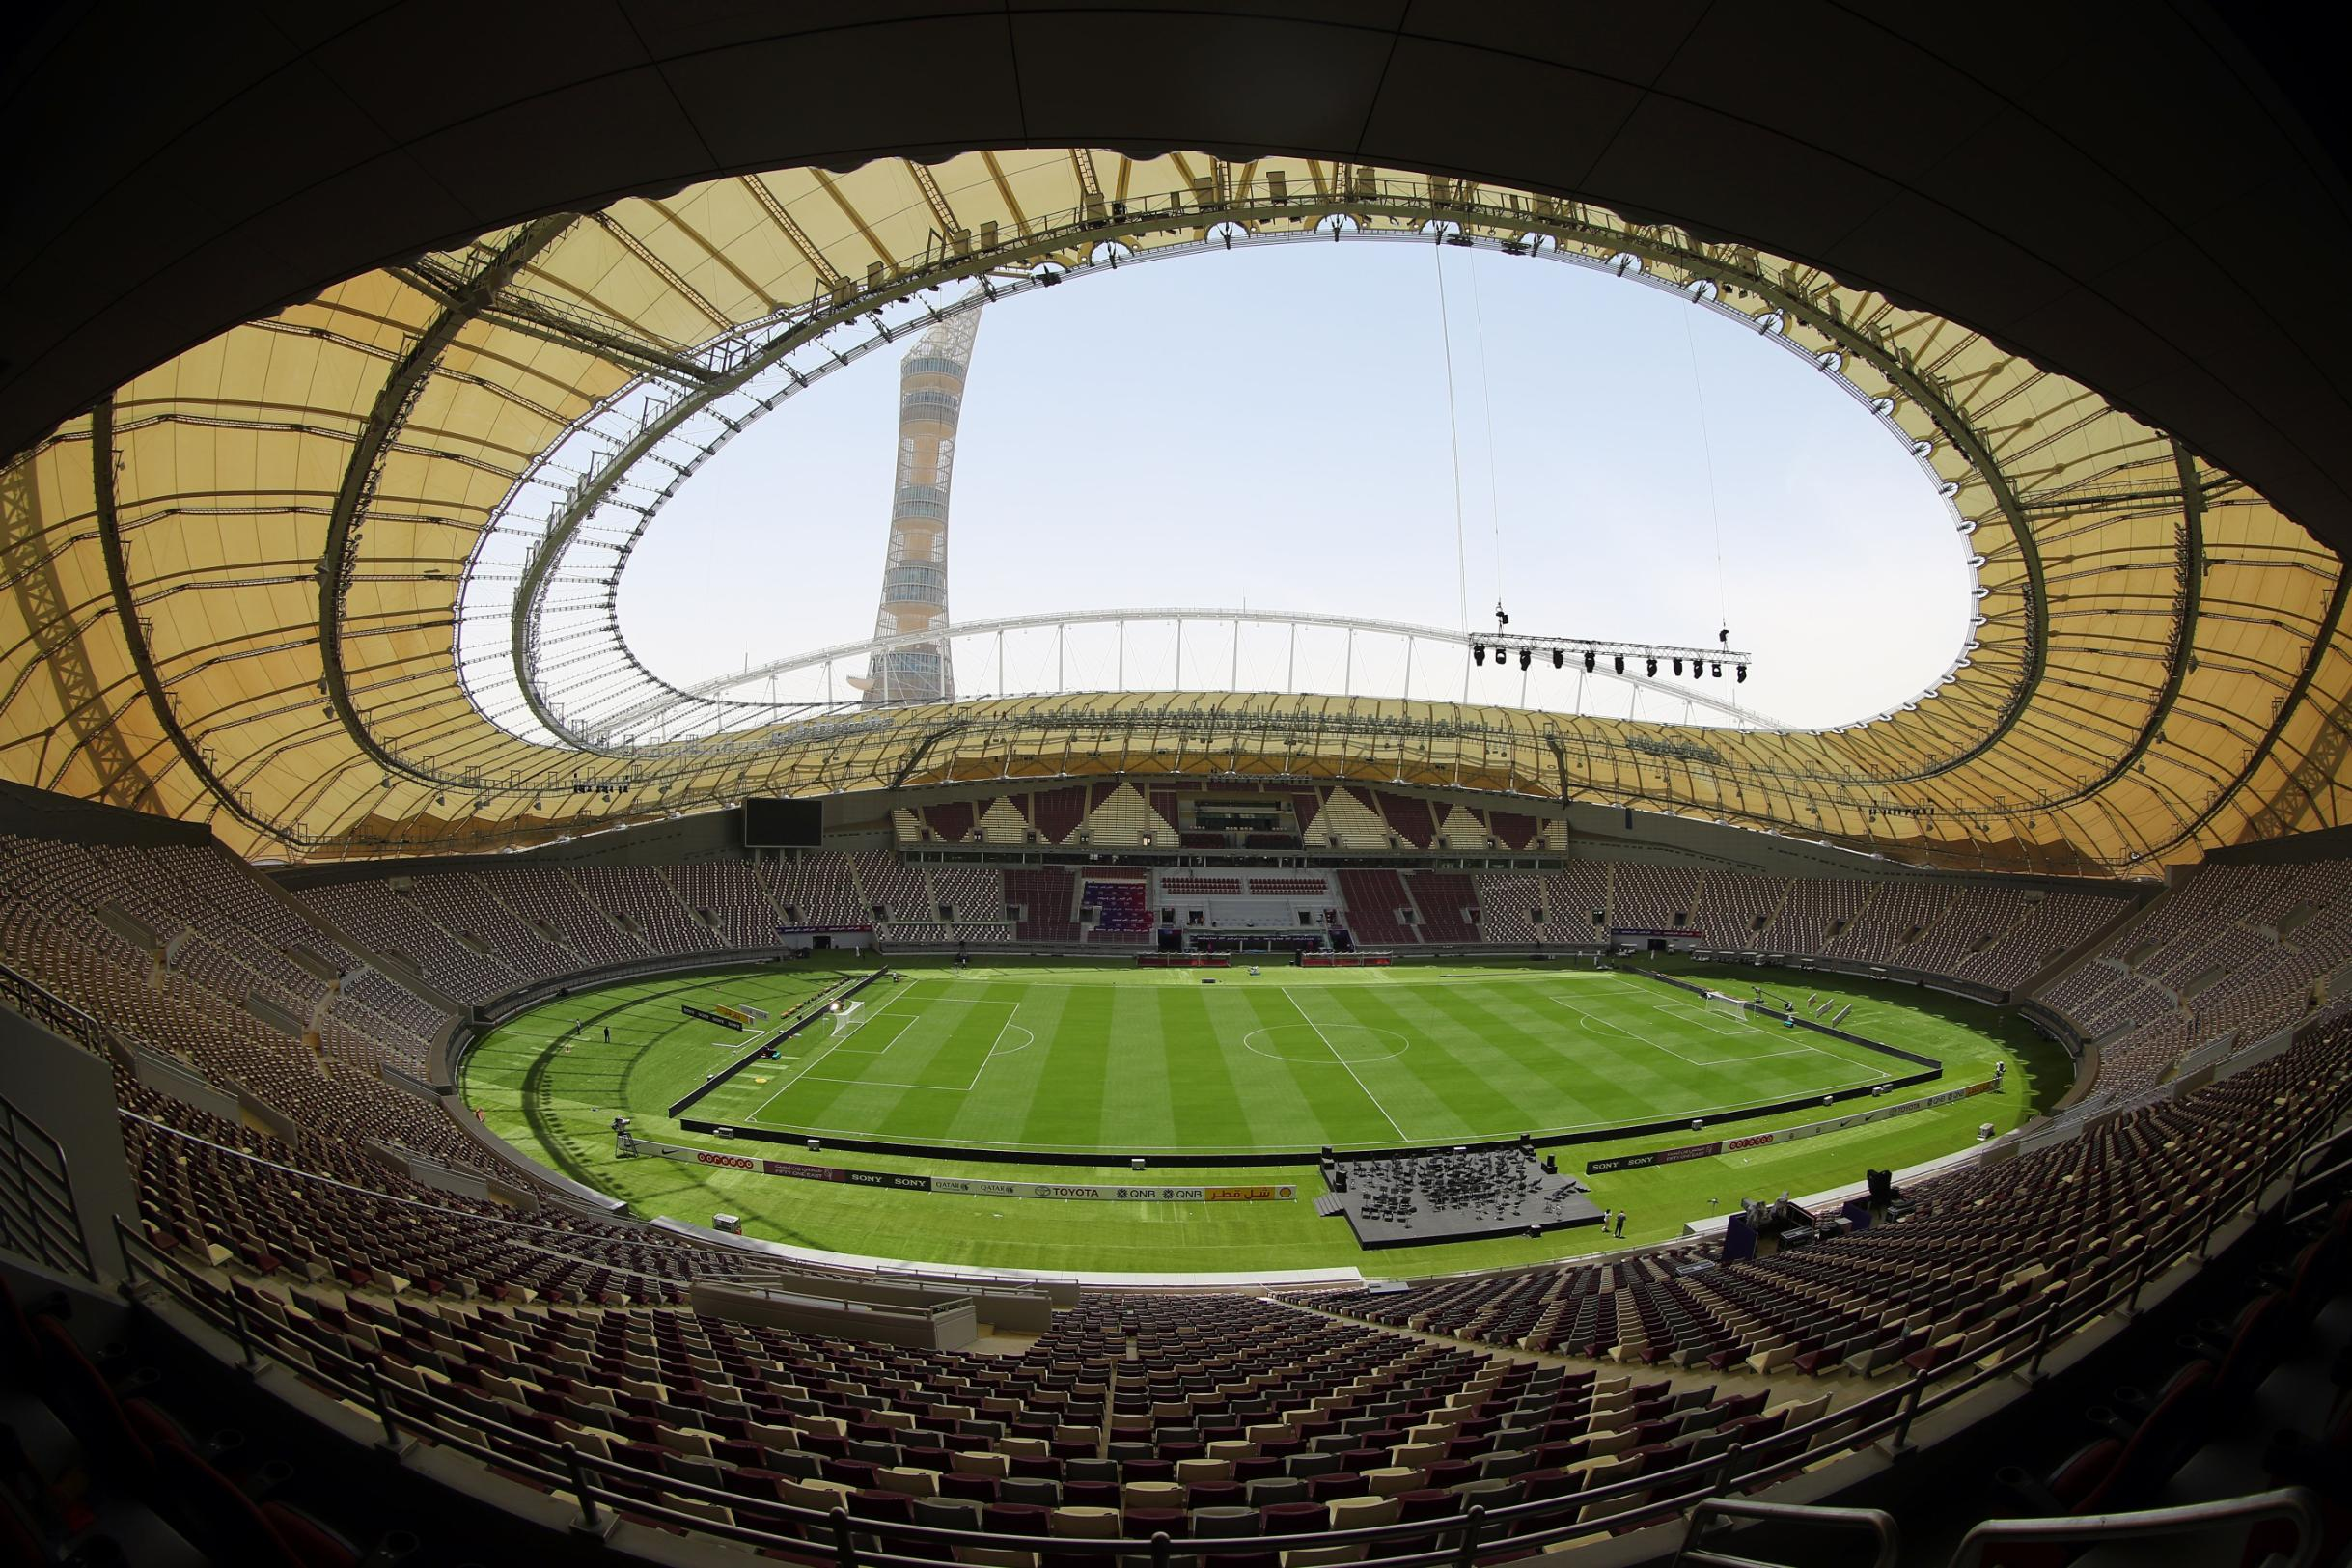 Qatar and Russia deny allegations of bribery surrounding World Cup bids